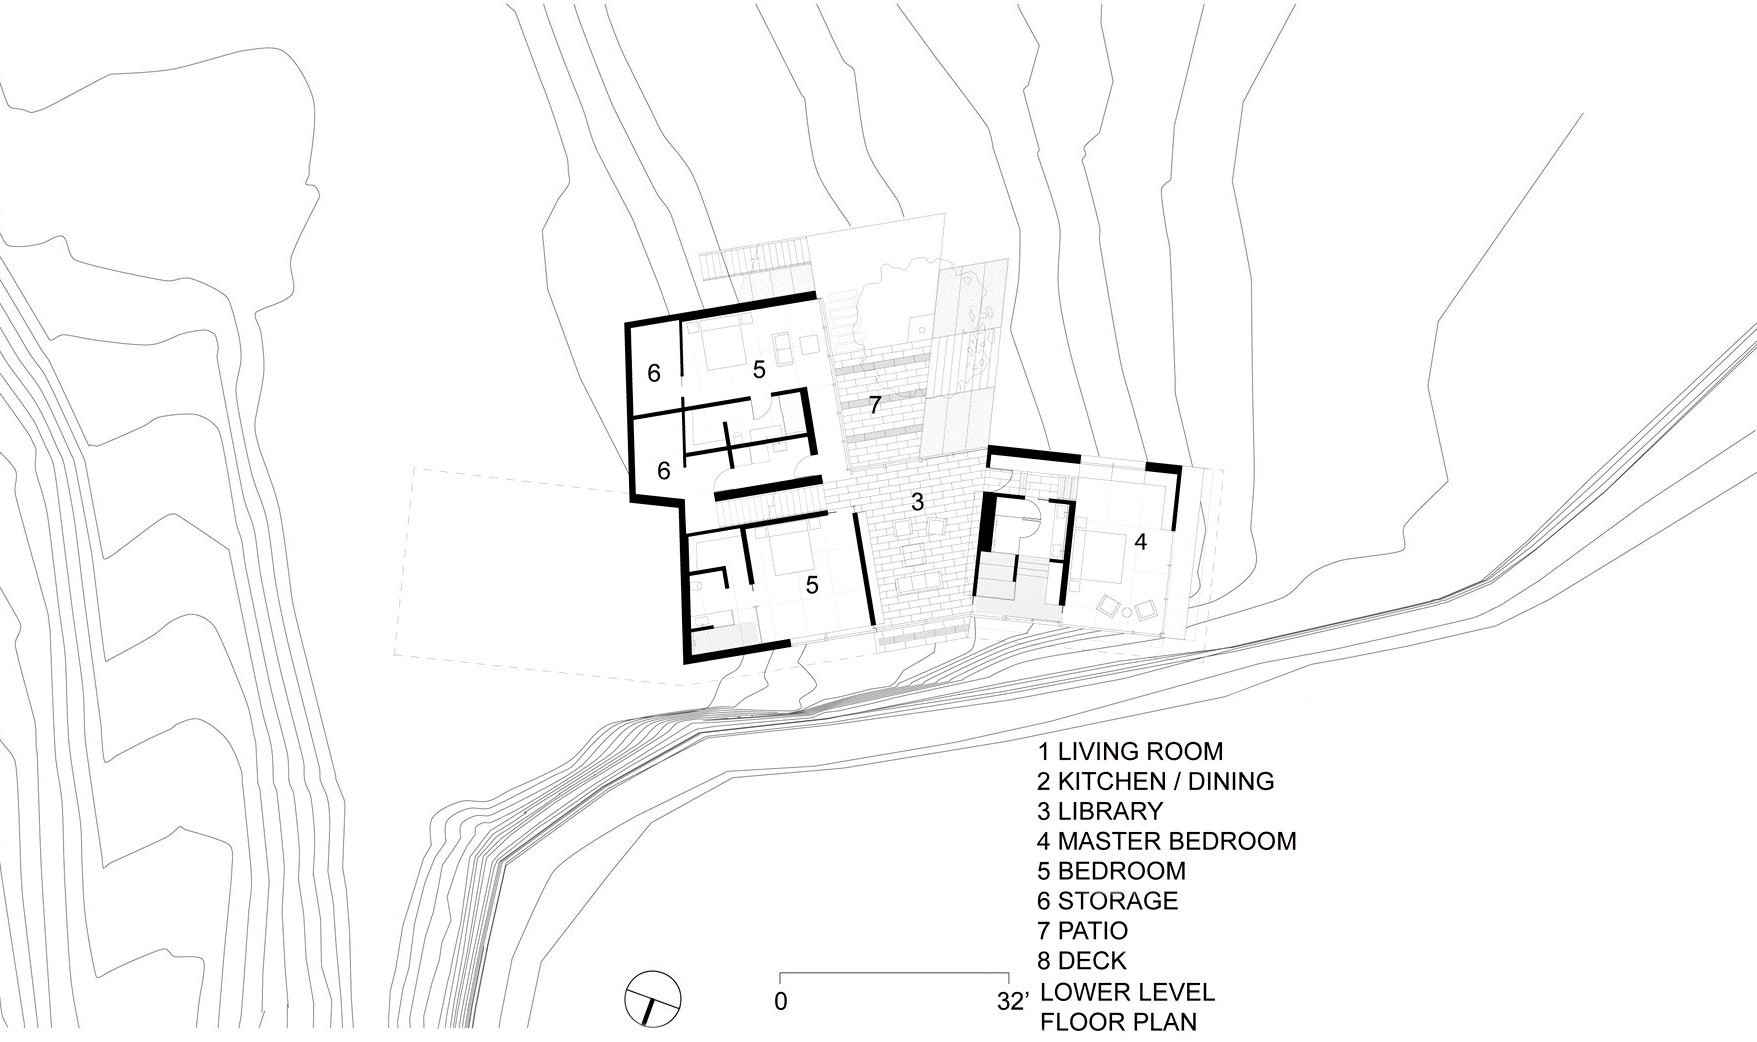 Floor Plans - Fall House Luxury Residence - Cabrillo Hwy, Big Sur, CA, USA